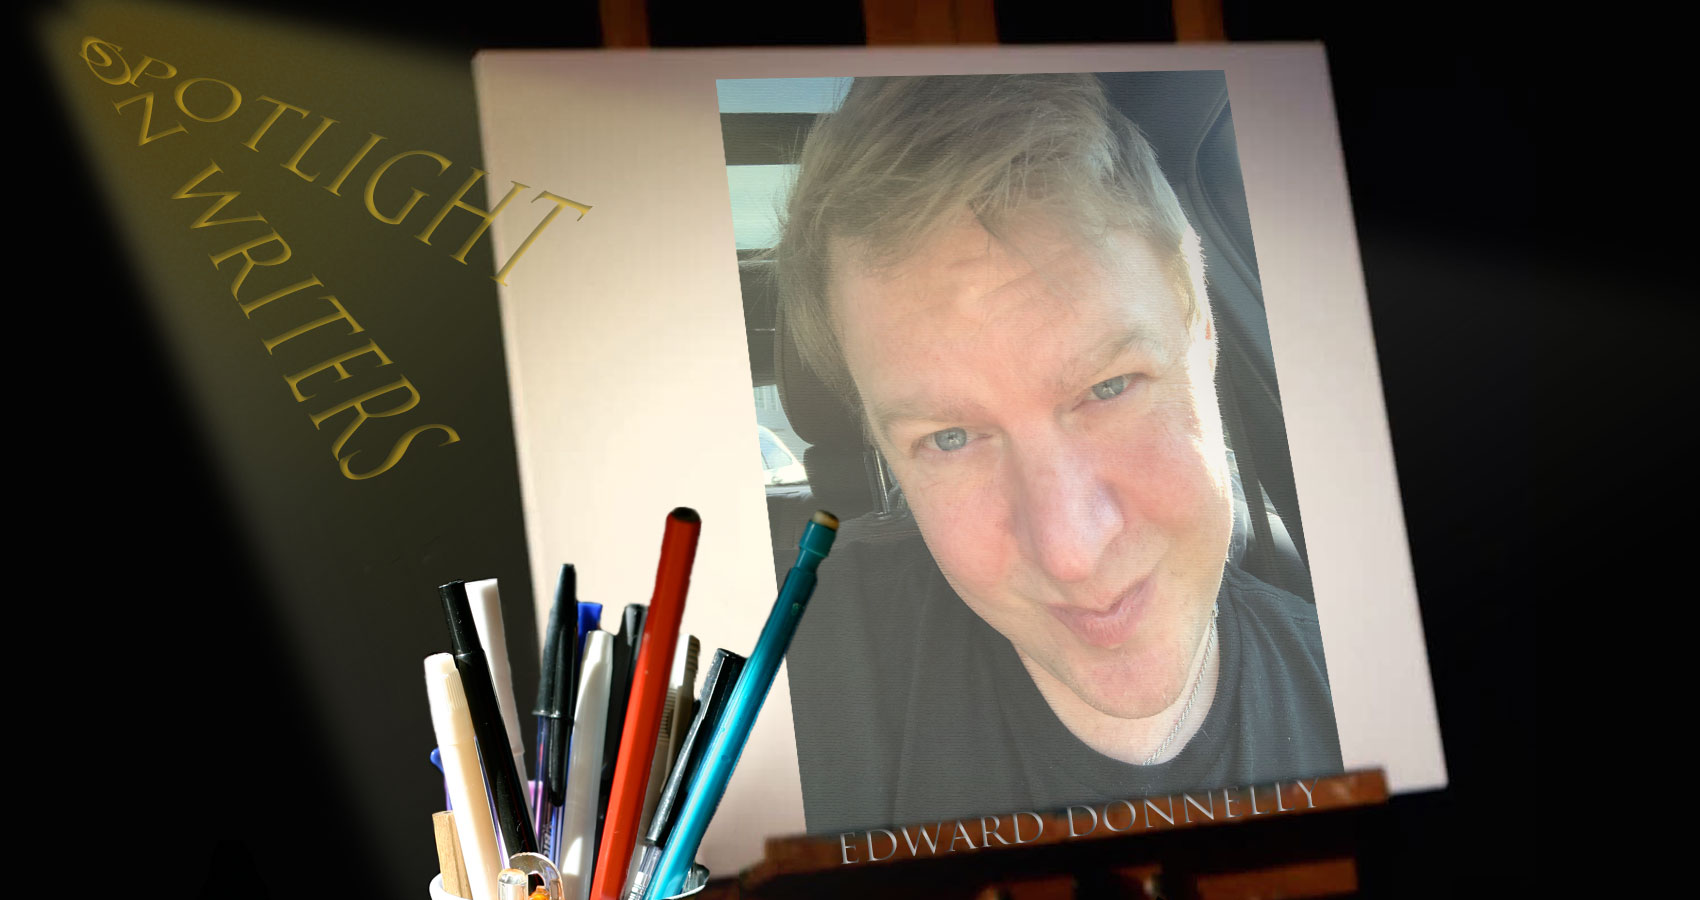 Spotlight On Writers - Edward Donnelly, interview at Spillwords.com